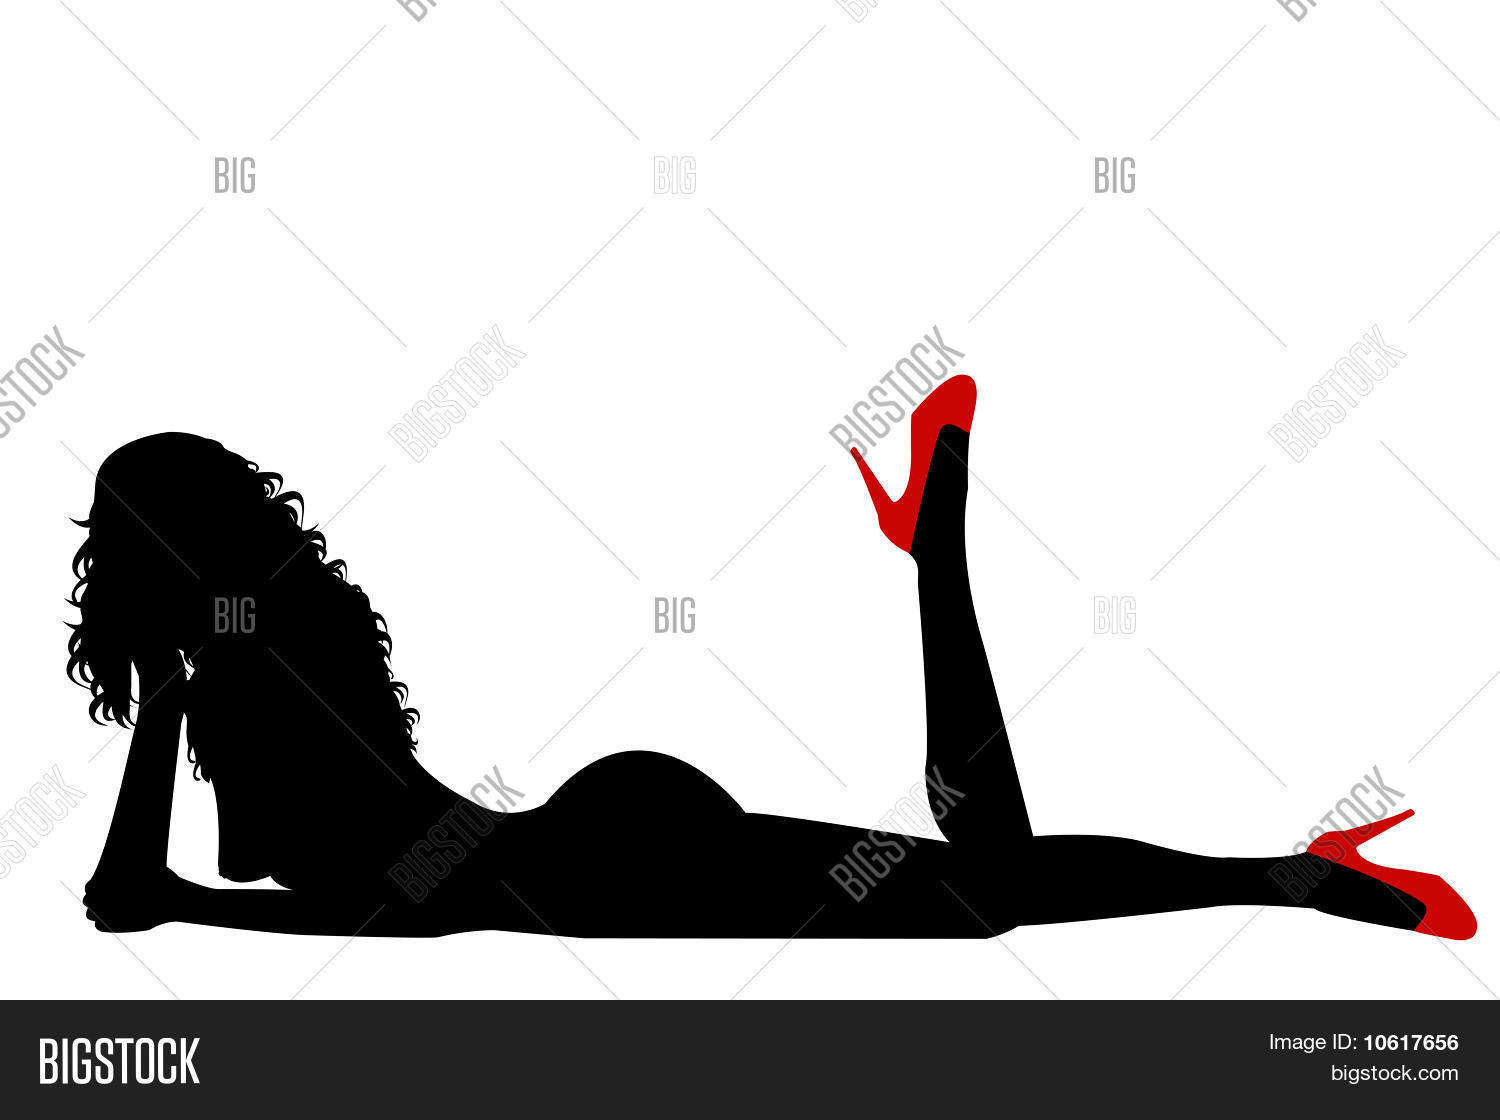 Naked Sexy Woman Image  Photo Free Trial  Bigstock-5450